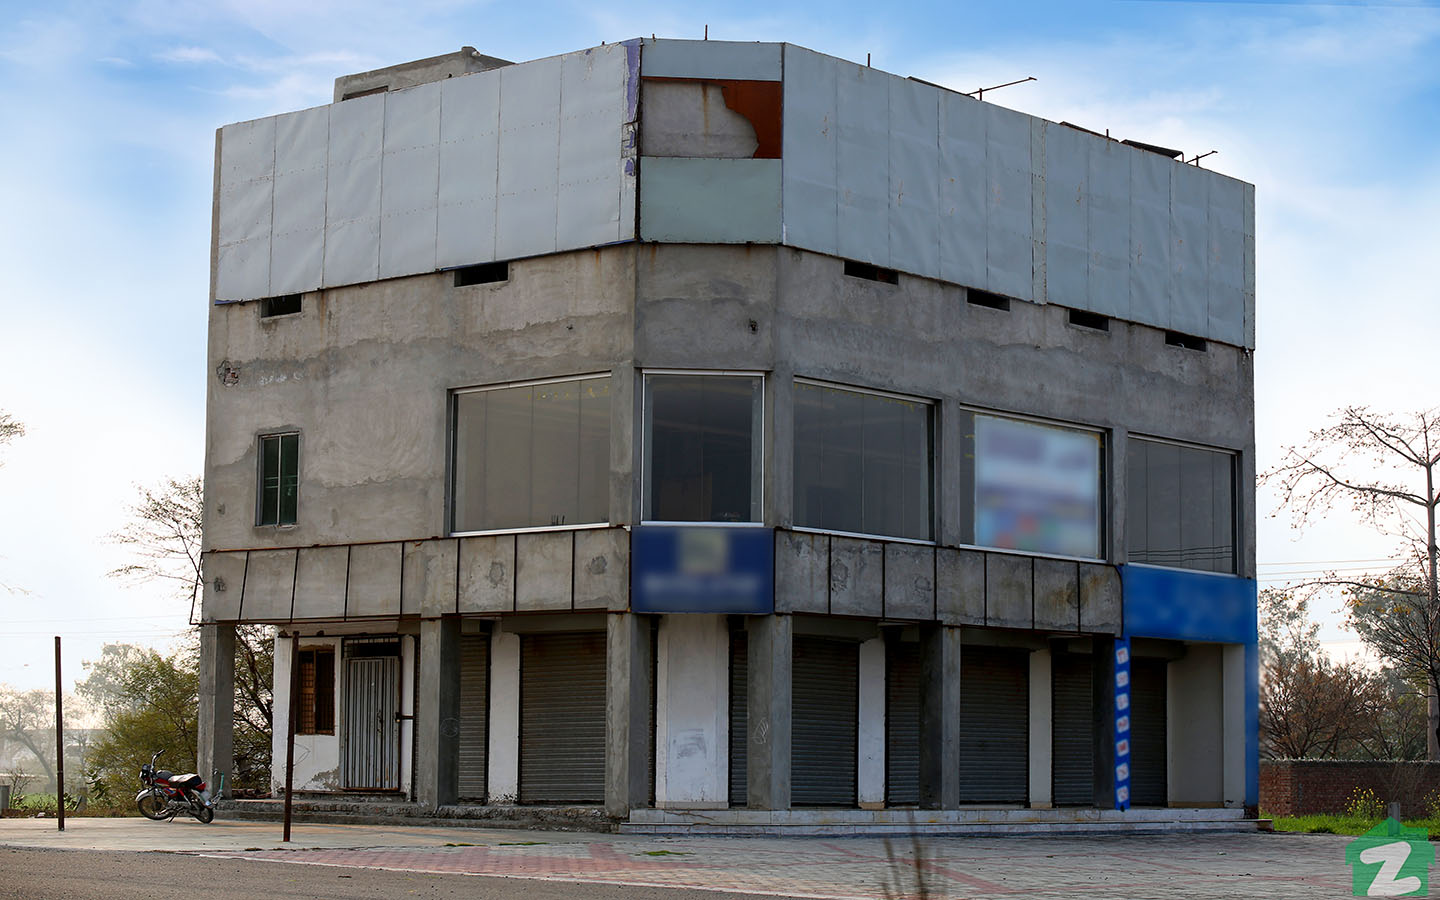 Development for structures of mall buildings in Phase 2, NFC are in process